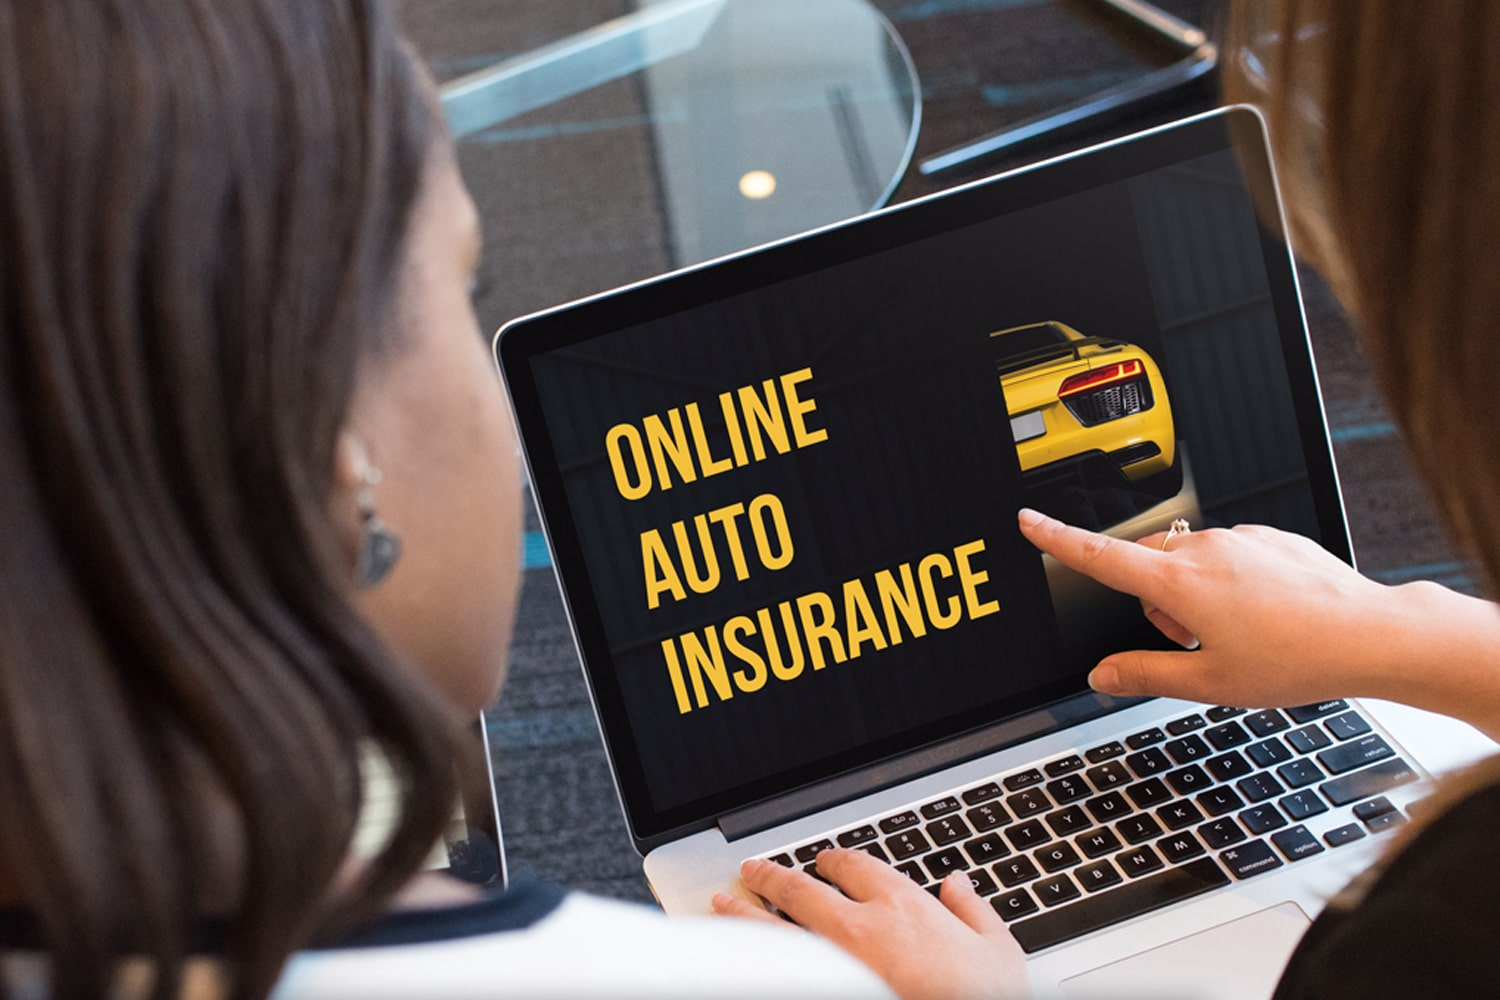 pointing at online auto insurance